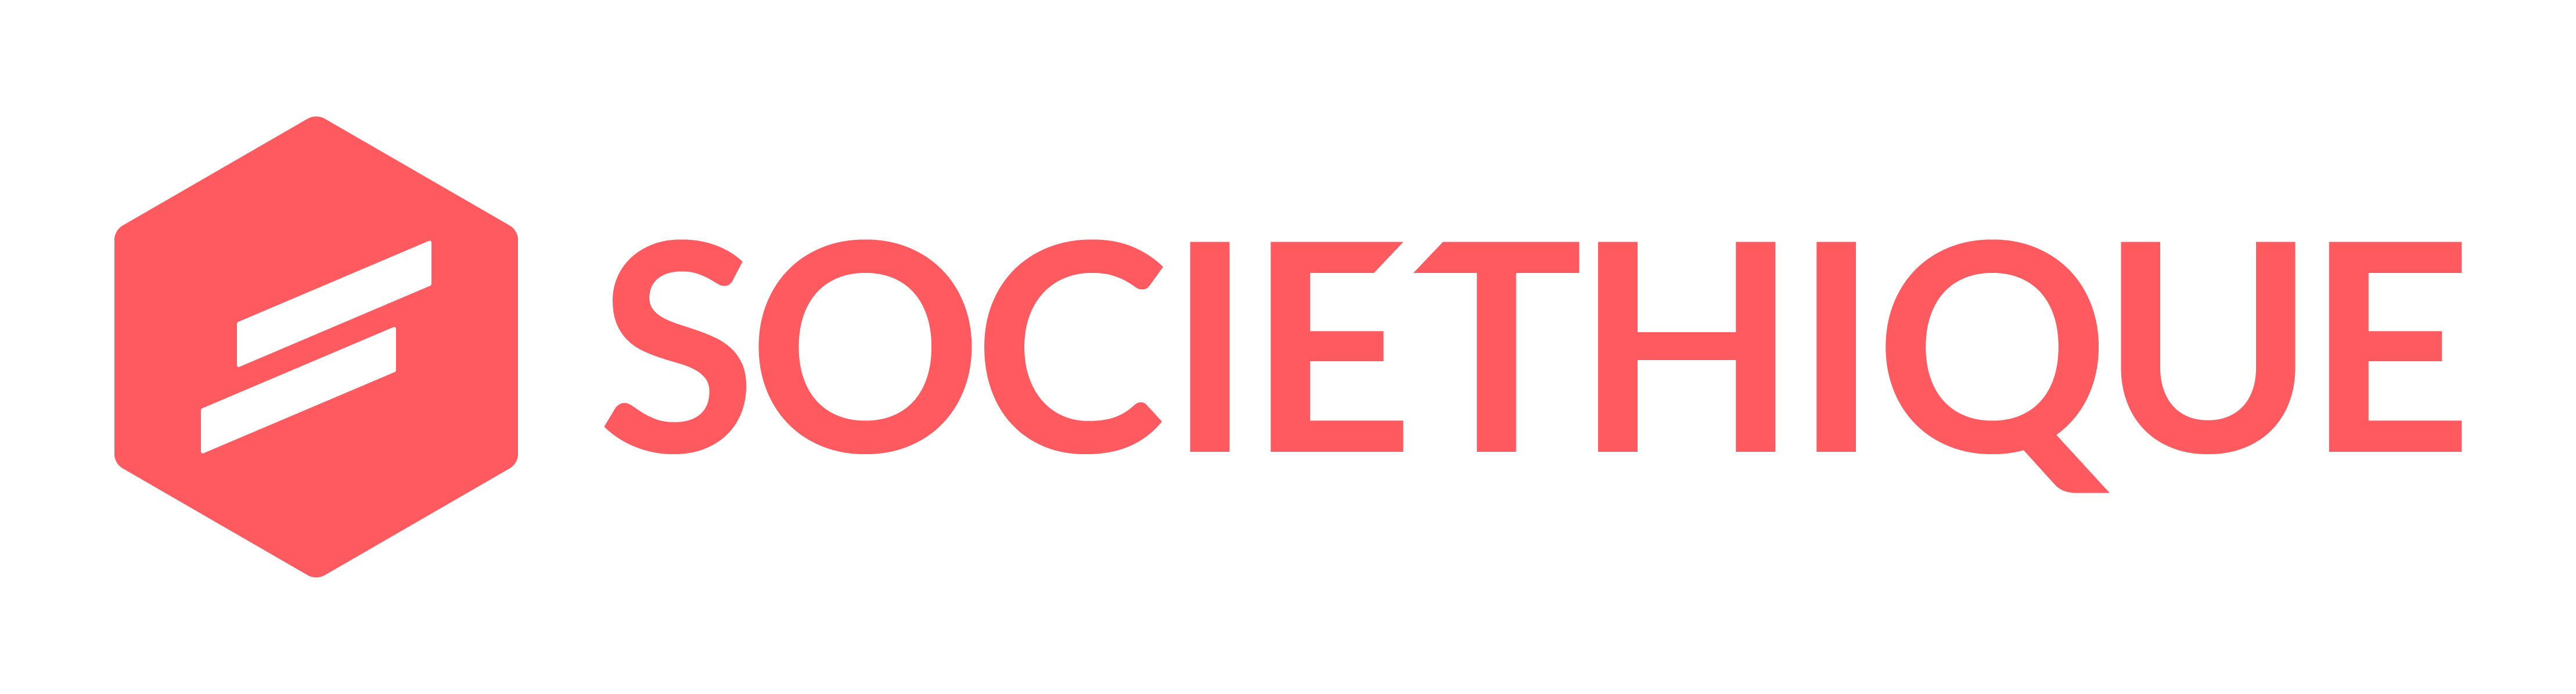 Institut Societhique